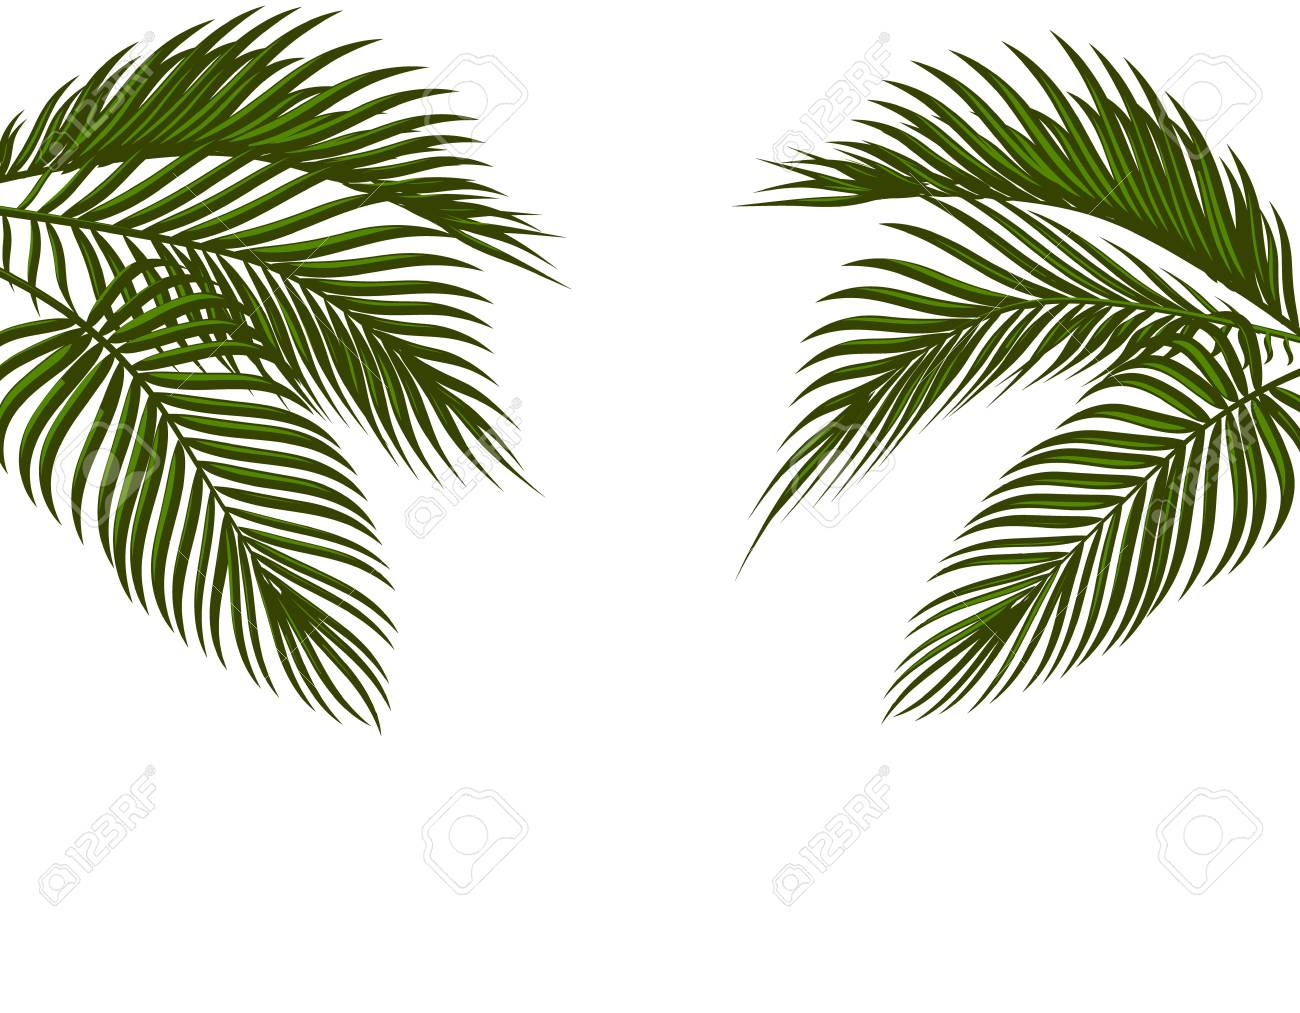 Different In Form Tropical Dark Green Palm Leaves On Both Sides Stock Photo Picture And Royalty Free Image Image 97507093 22 x separate elements in png with transparent background & jpg with white background. different in form tropical dark green palm leaves on both sides